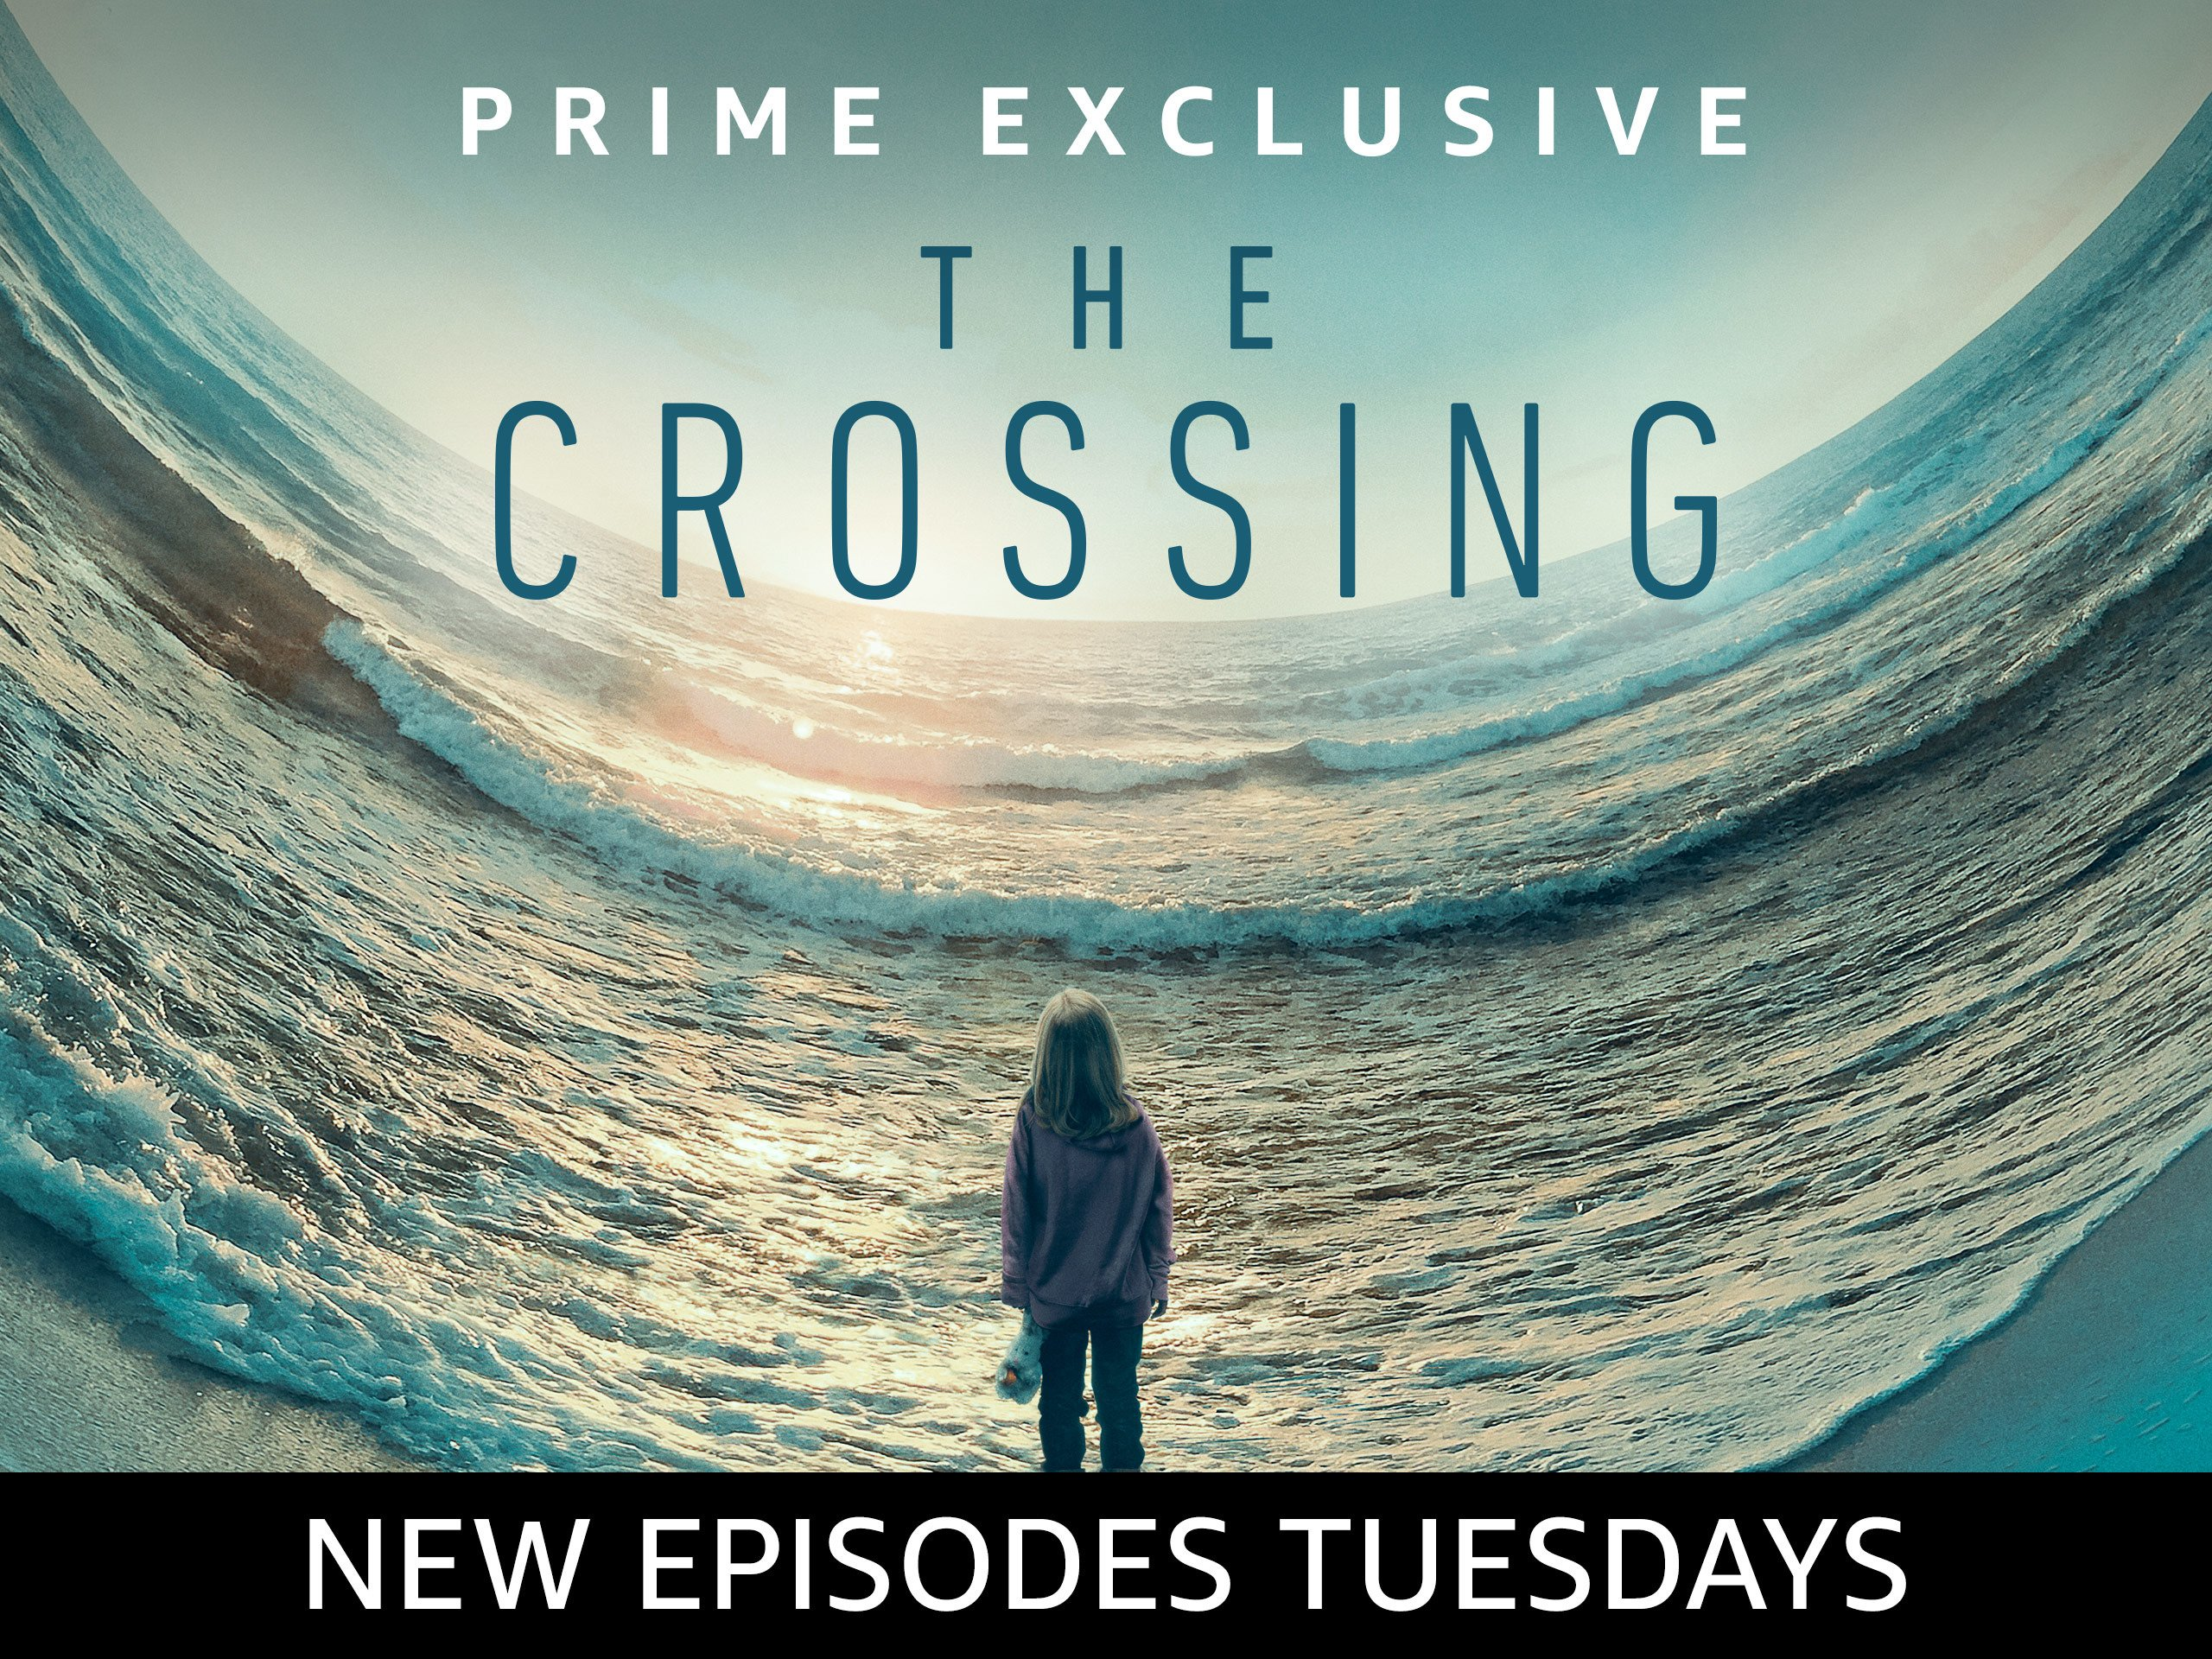 The Crossing Season 1 - Season 1